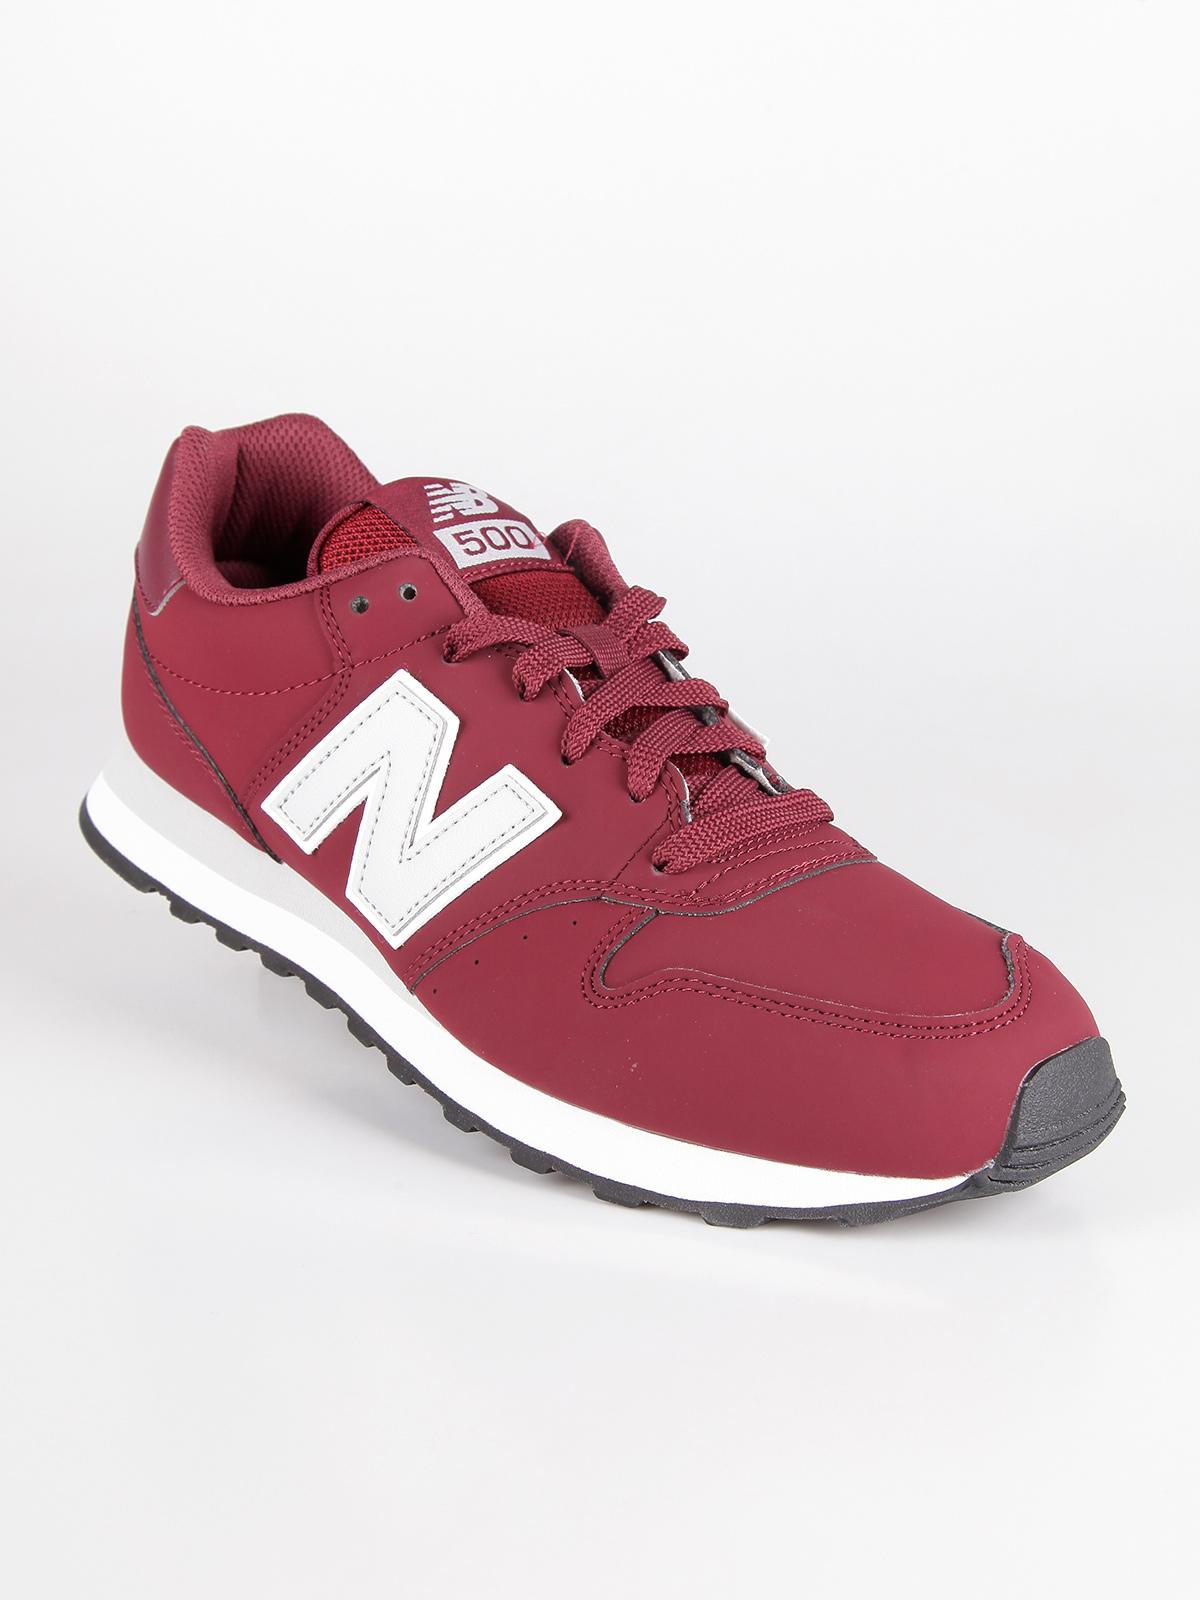 New Balance GM500RDG - Sneakers bordeaux uomo: Low-top Trainers